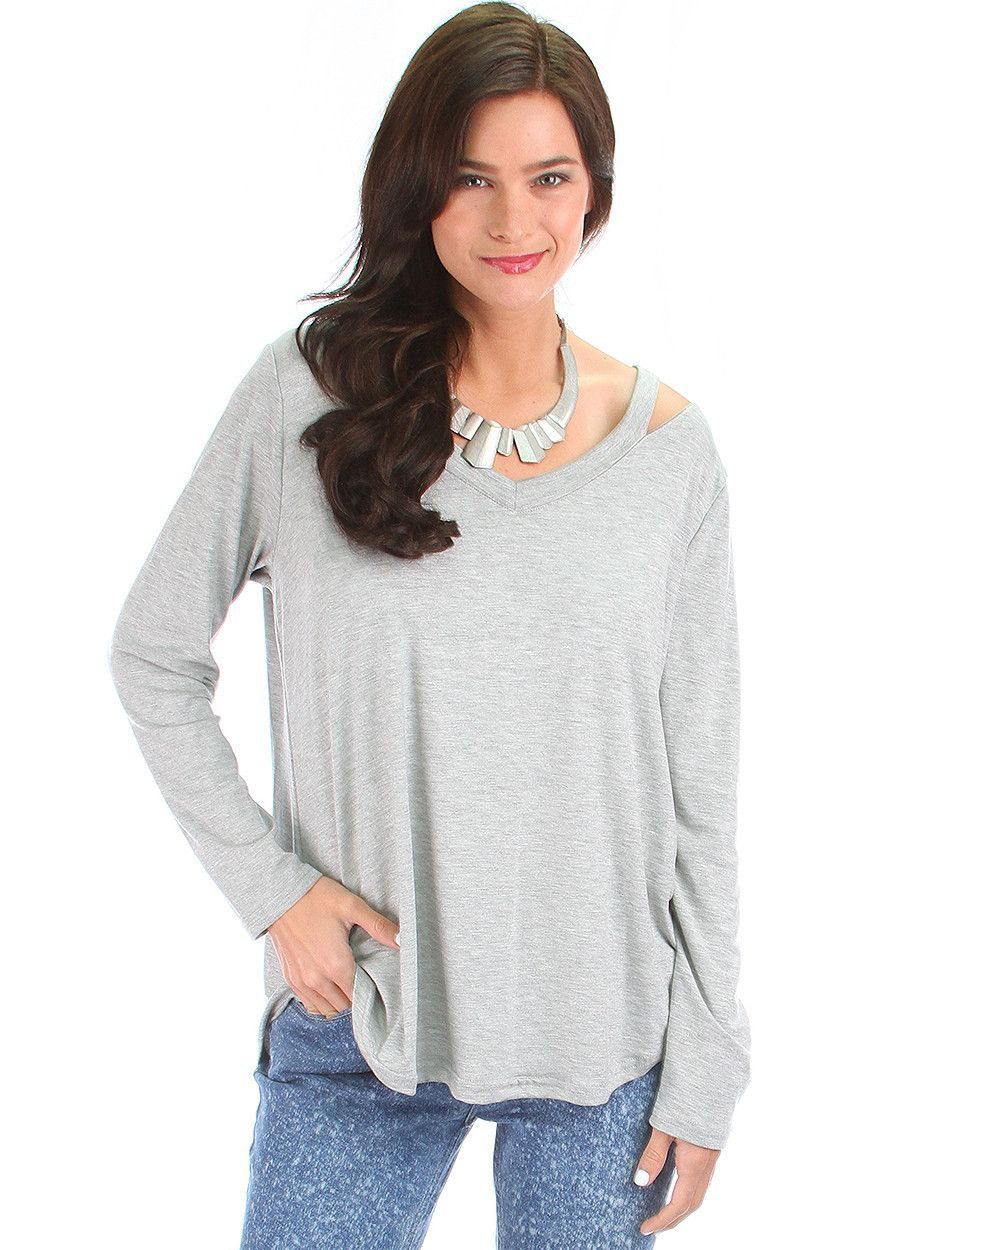 Cut Me Out! Long Sleeve Top In Grey